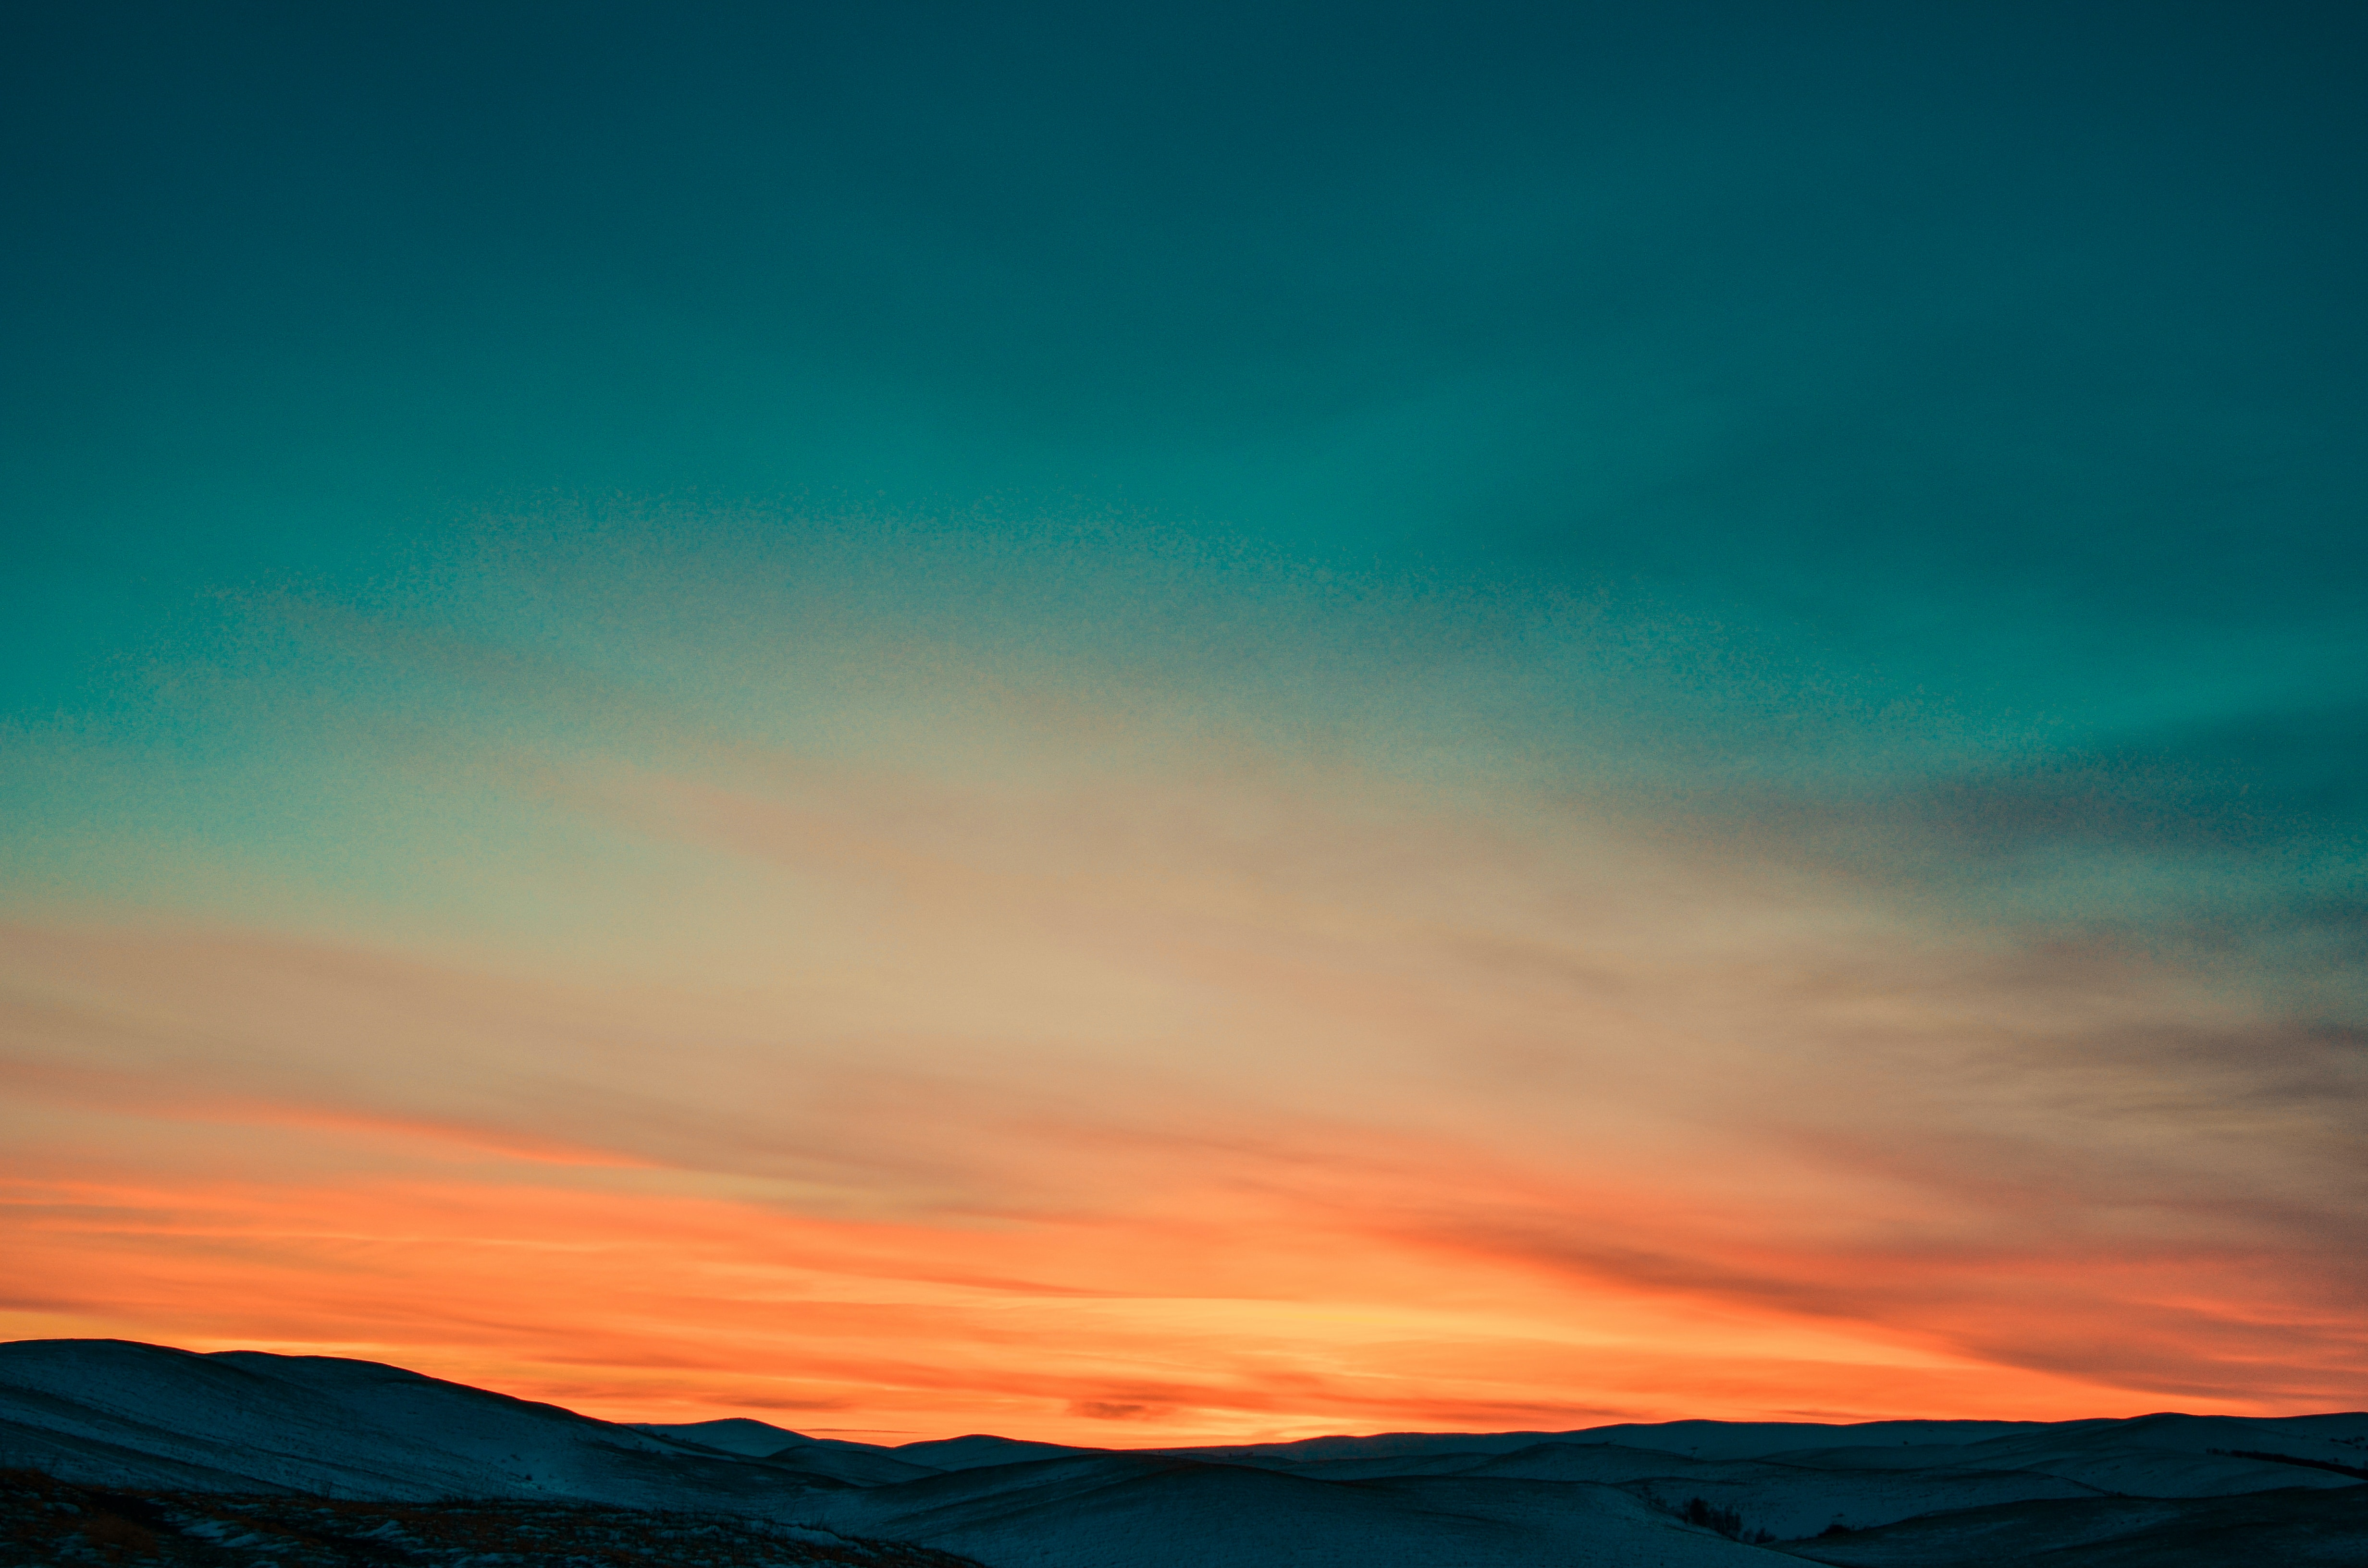 sunset over snow covered mountains  u00b7 free stock photo